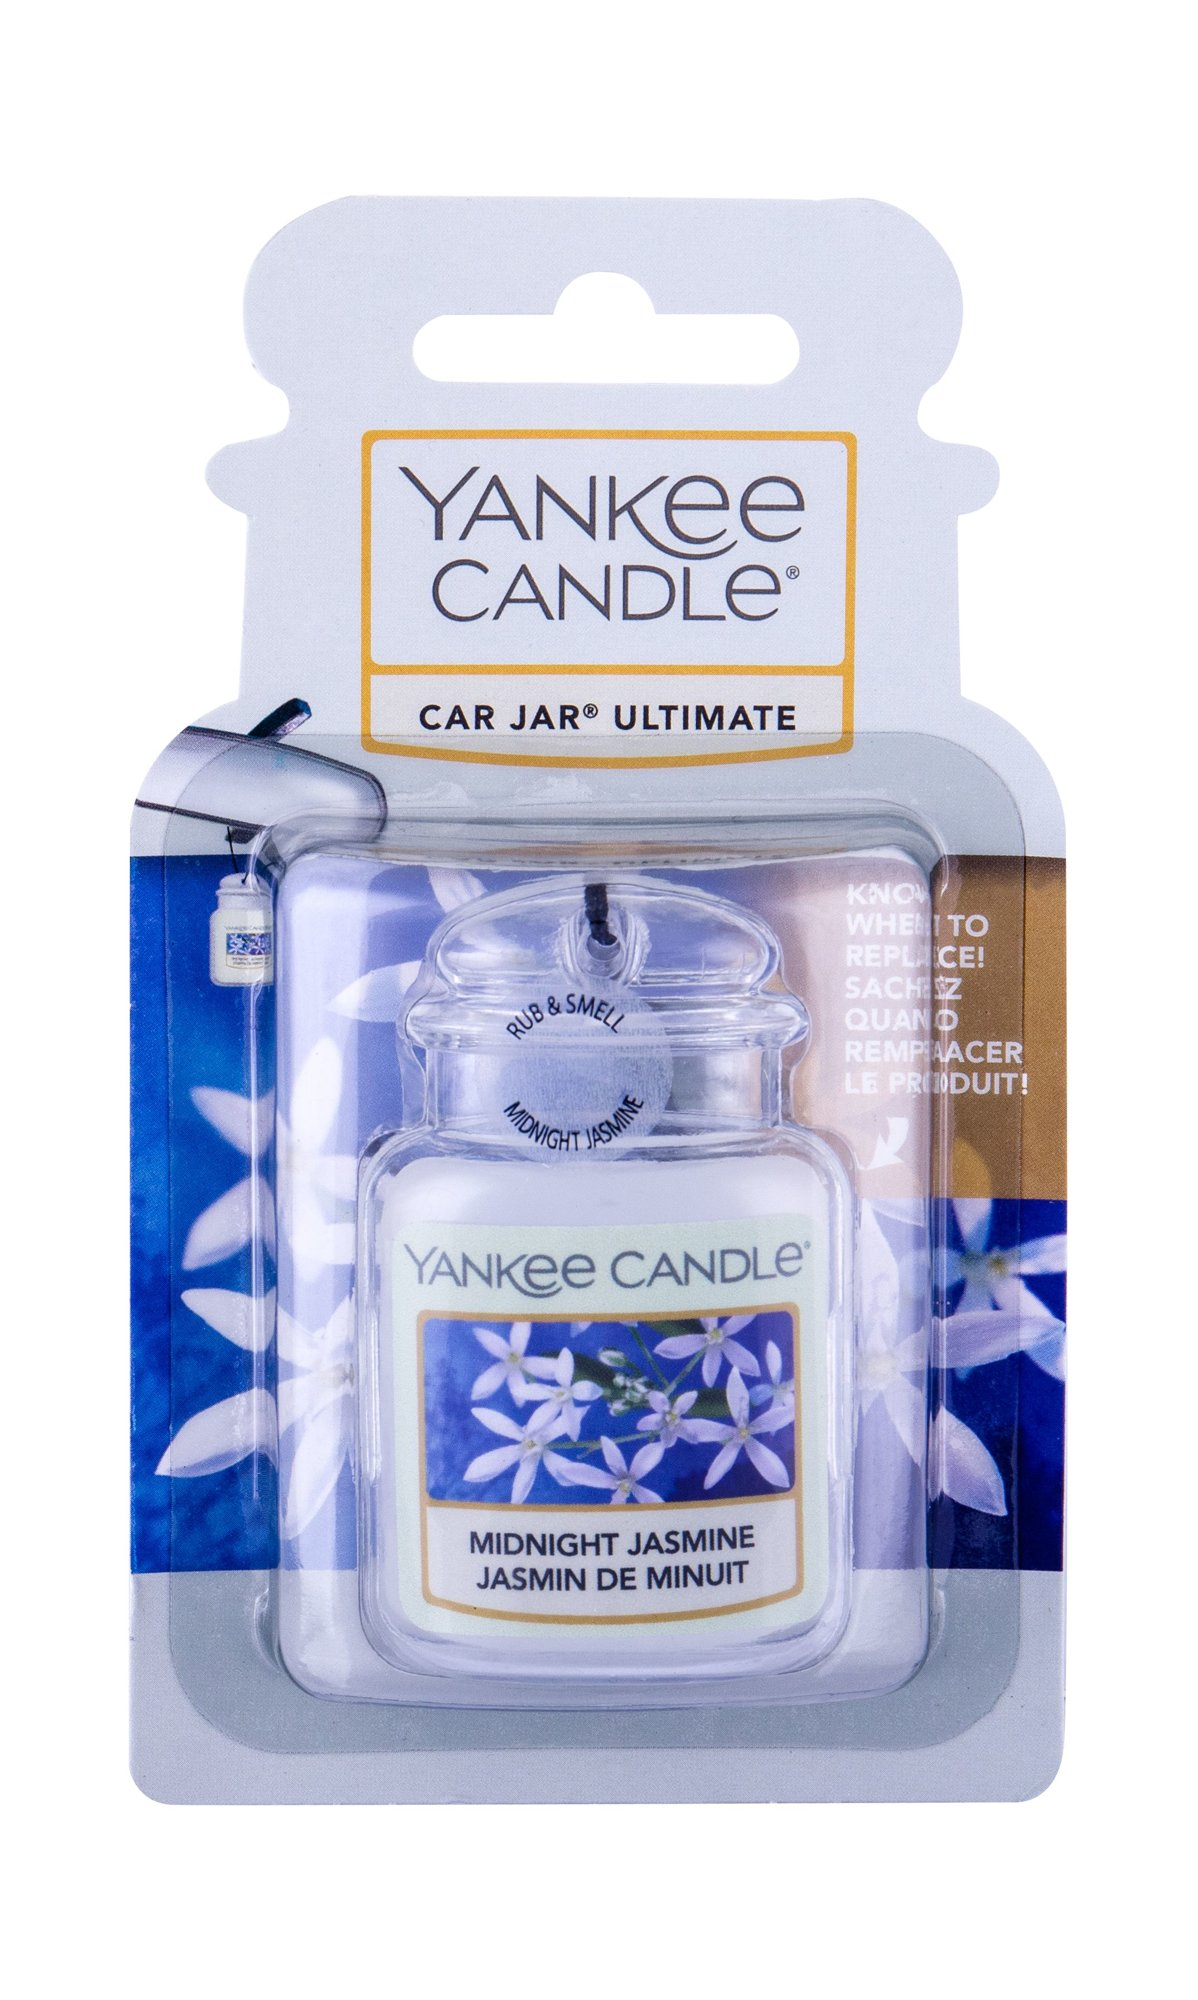 Yankee Candle Midnight Jasmine Car Jar (Vůně do auta, U, 1 ks)